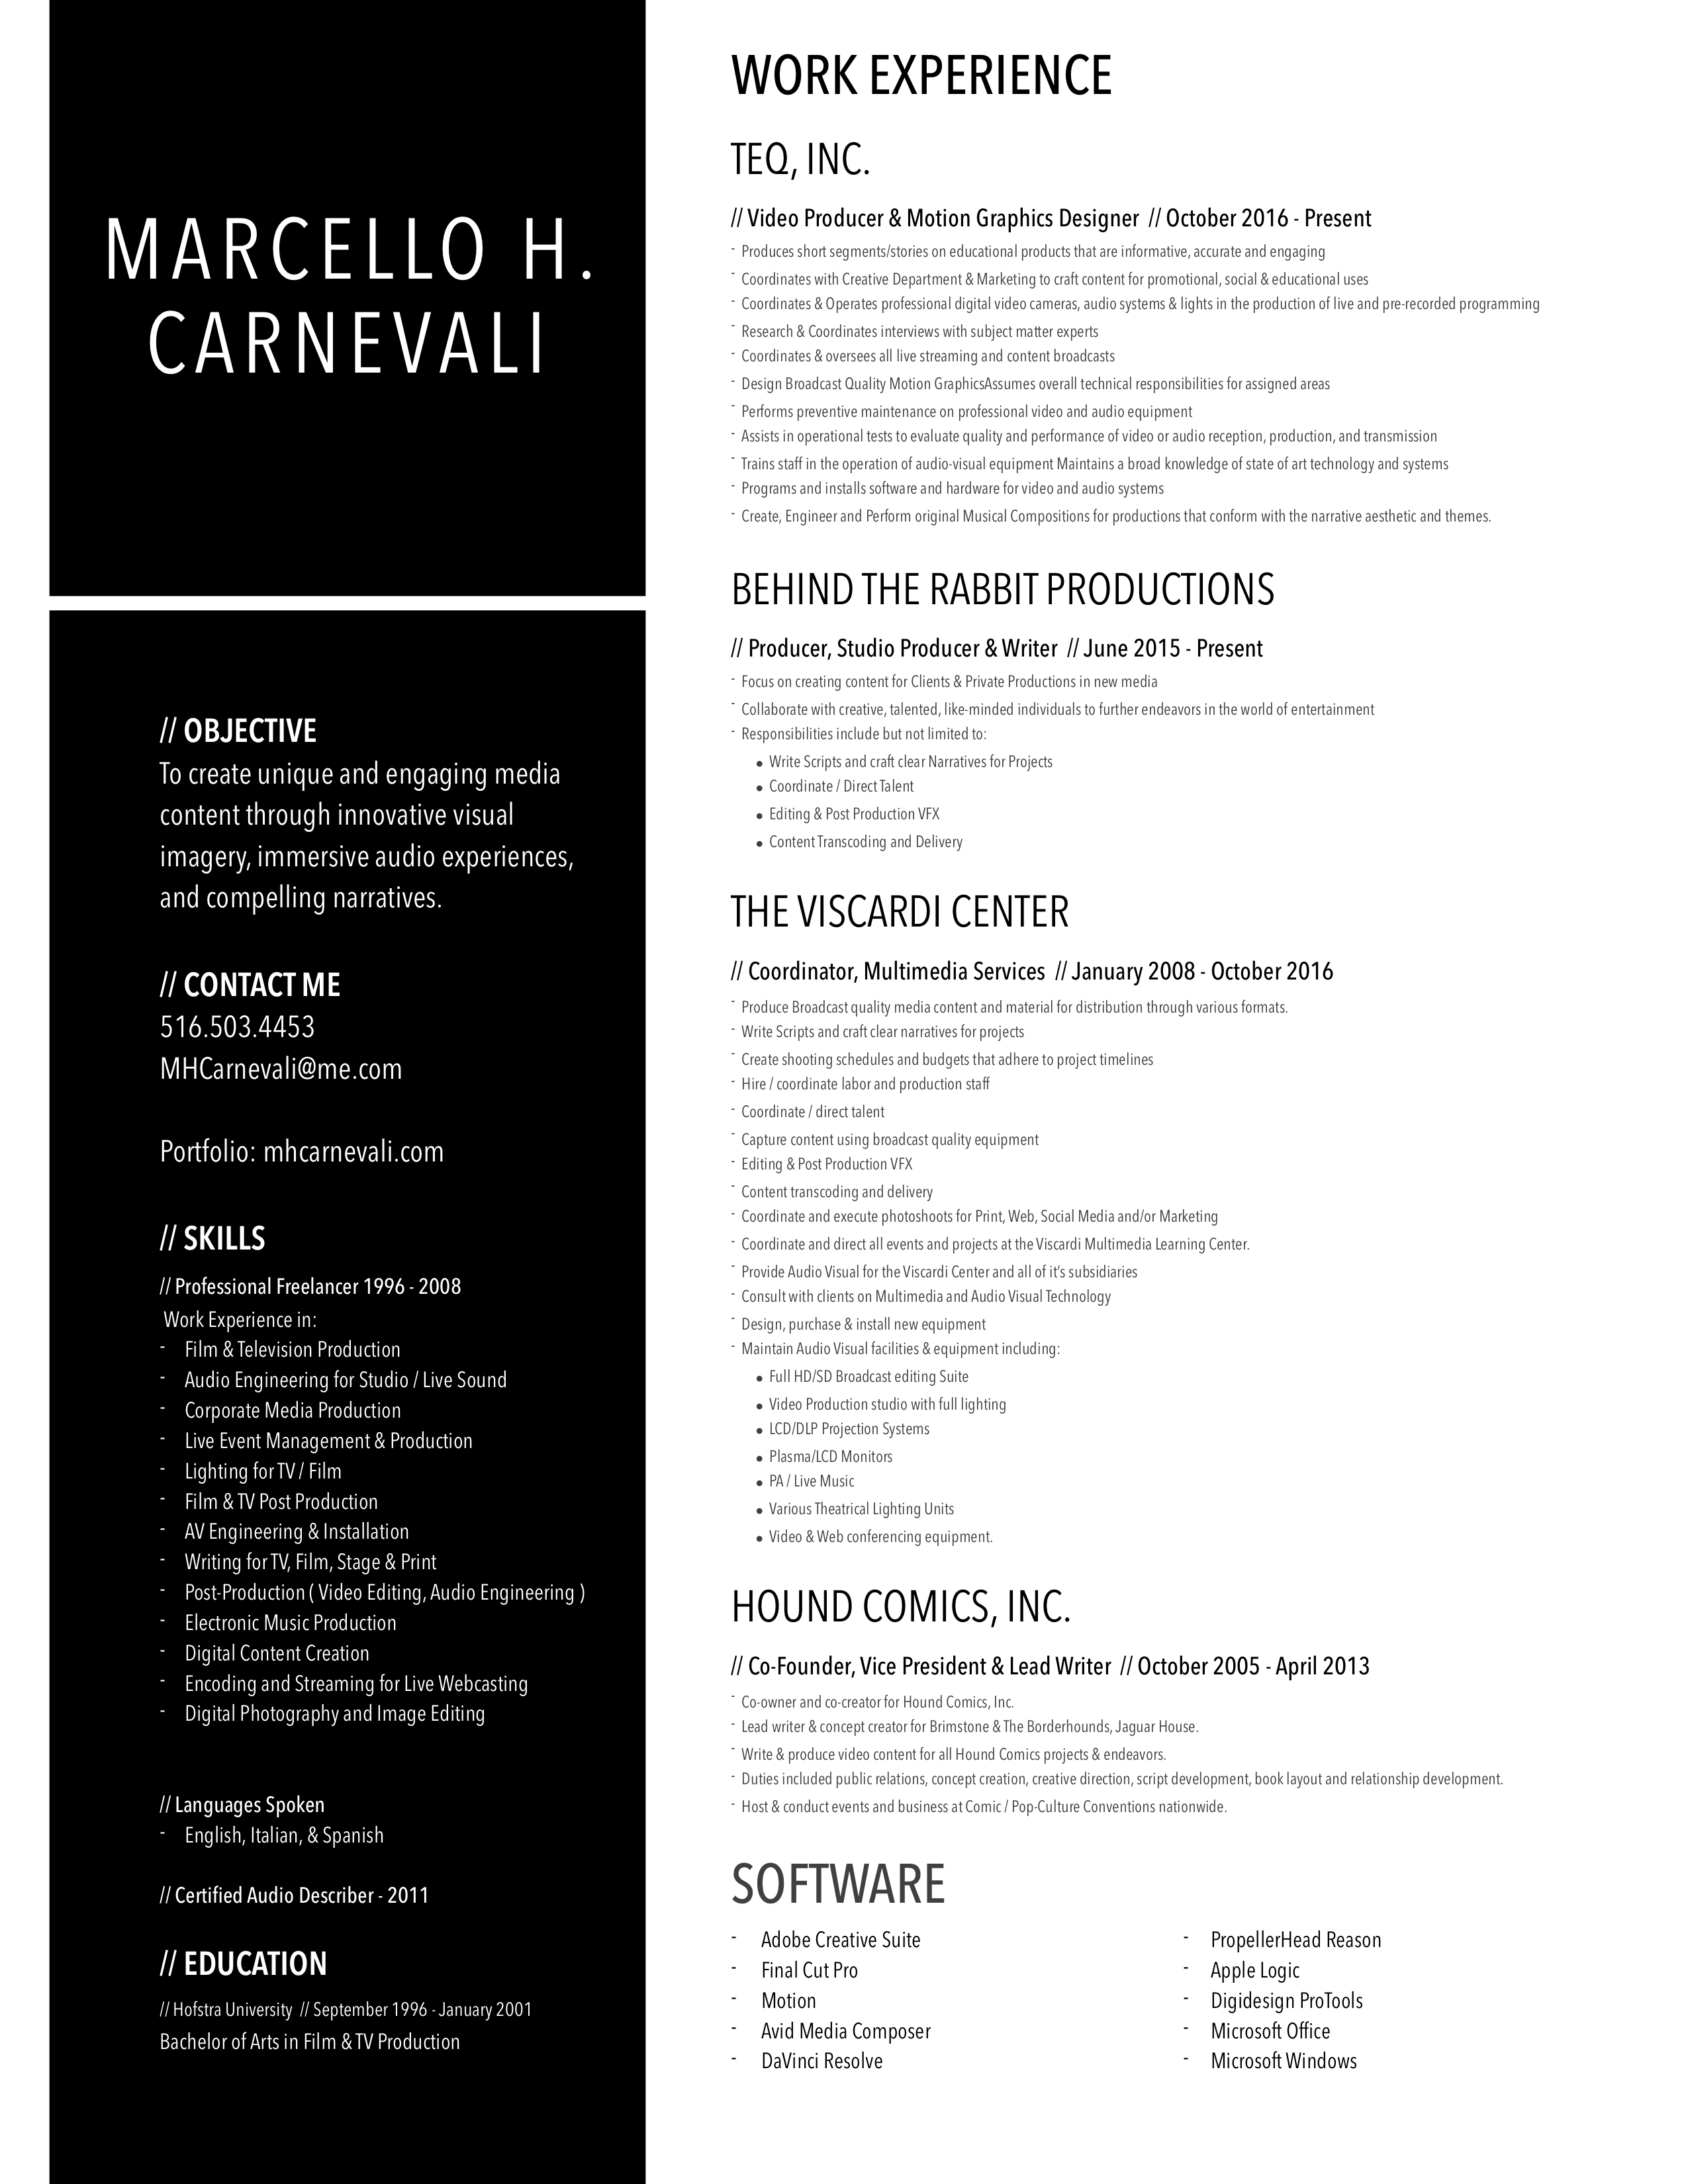 Marcello H. Carnevali Resume